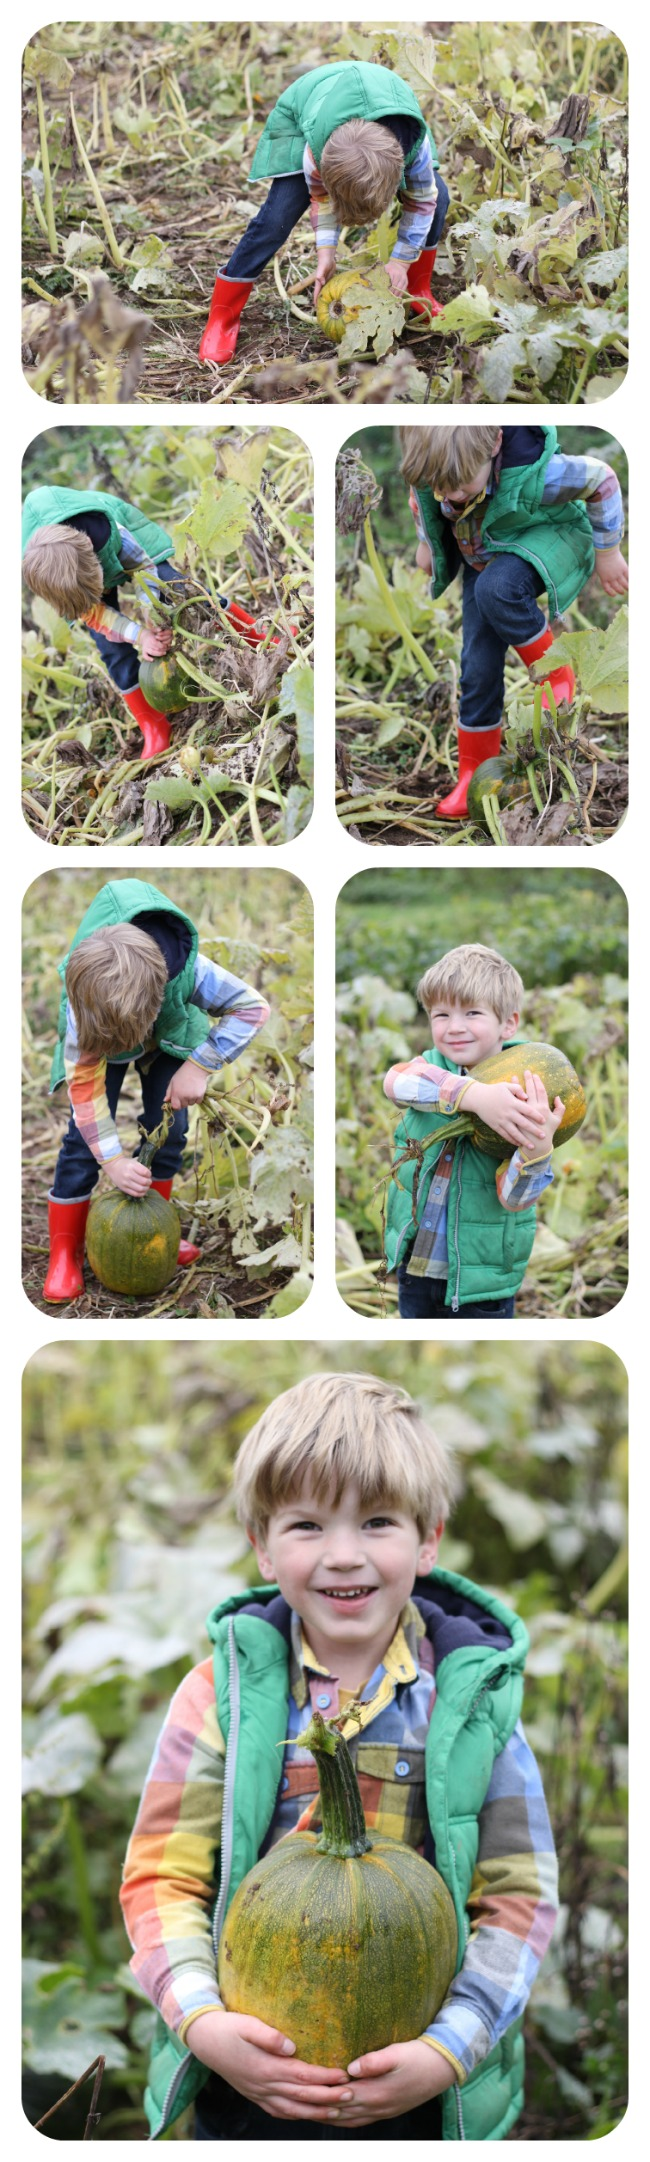 Pumpkin Picking 2014